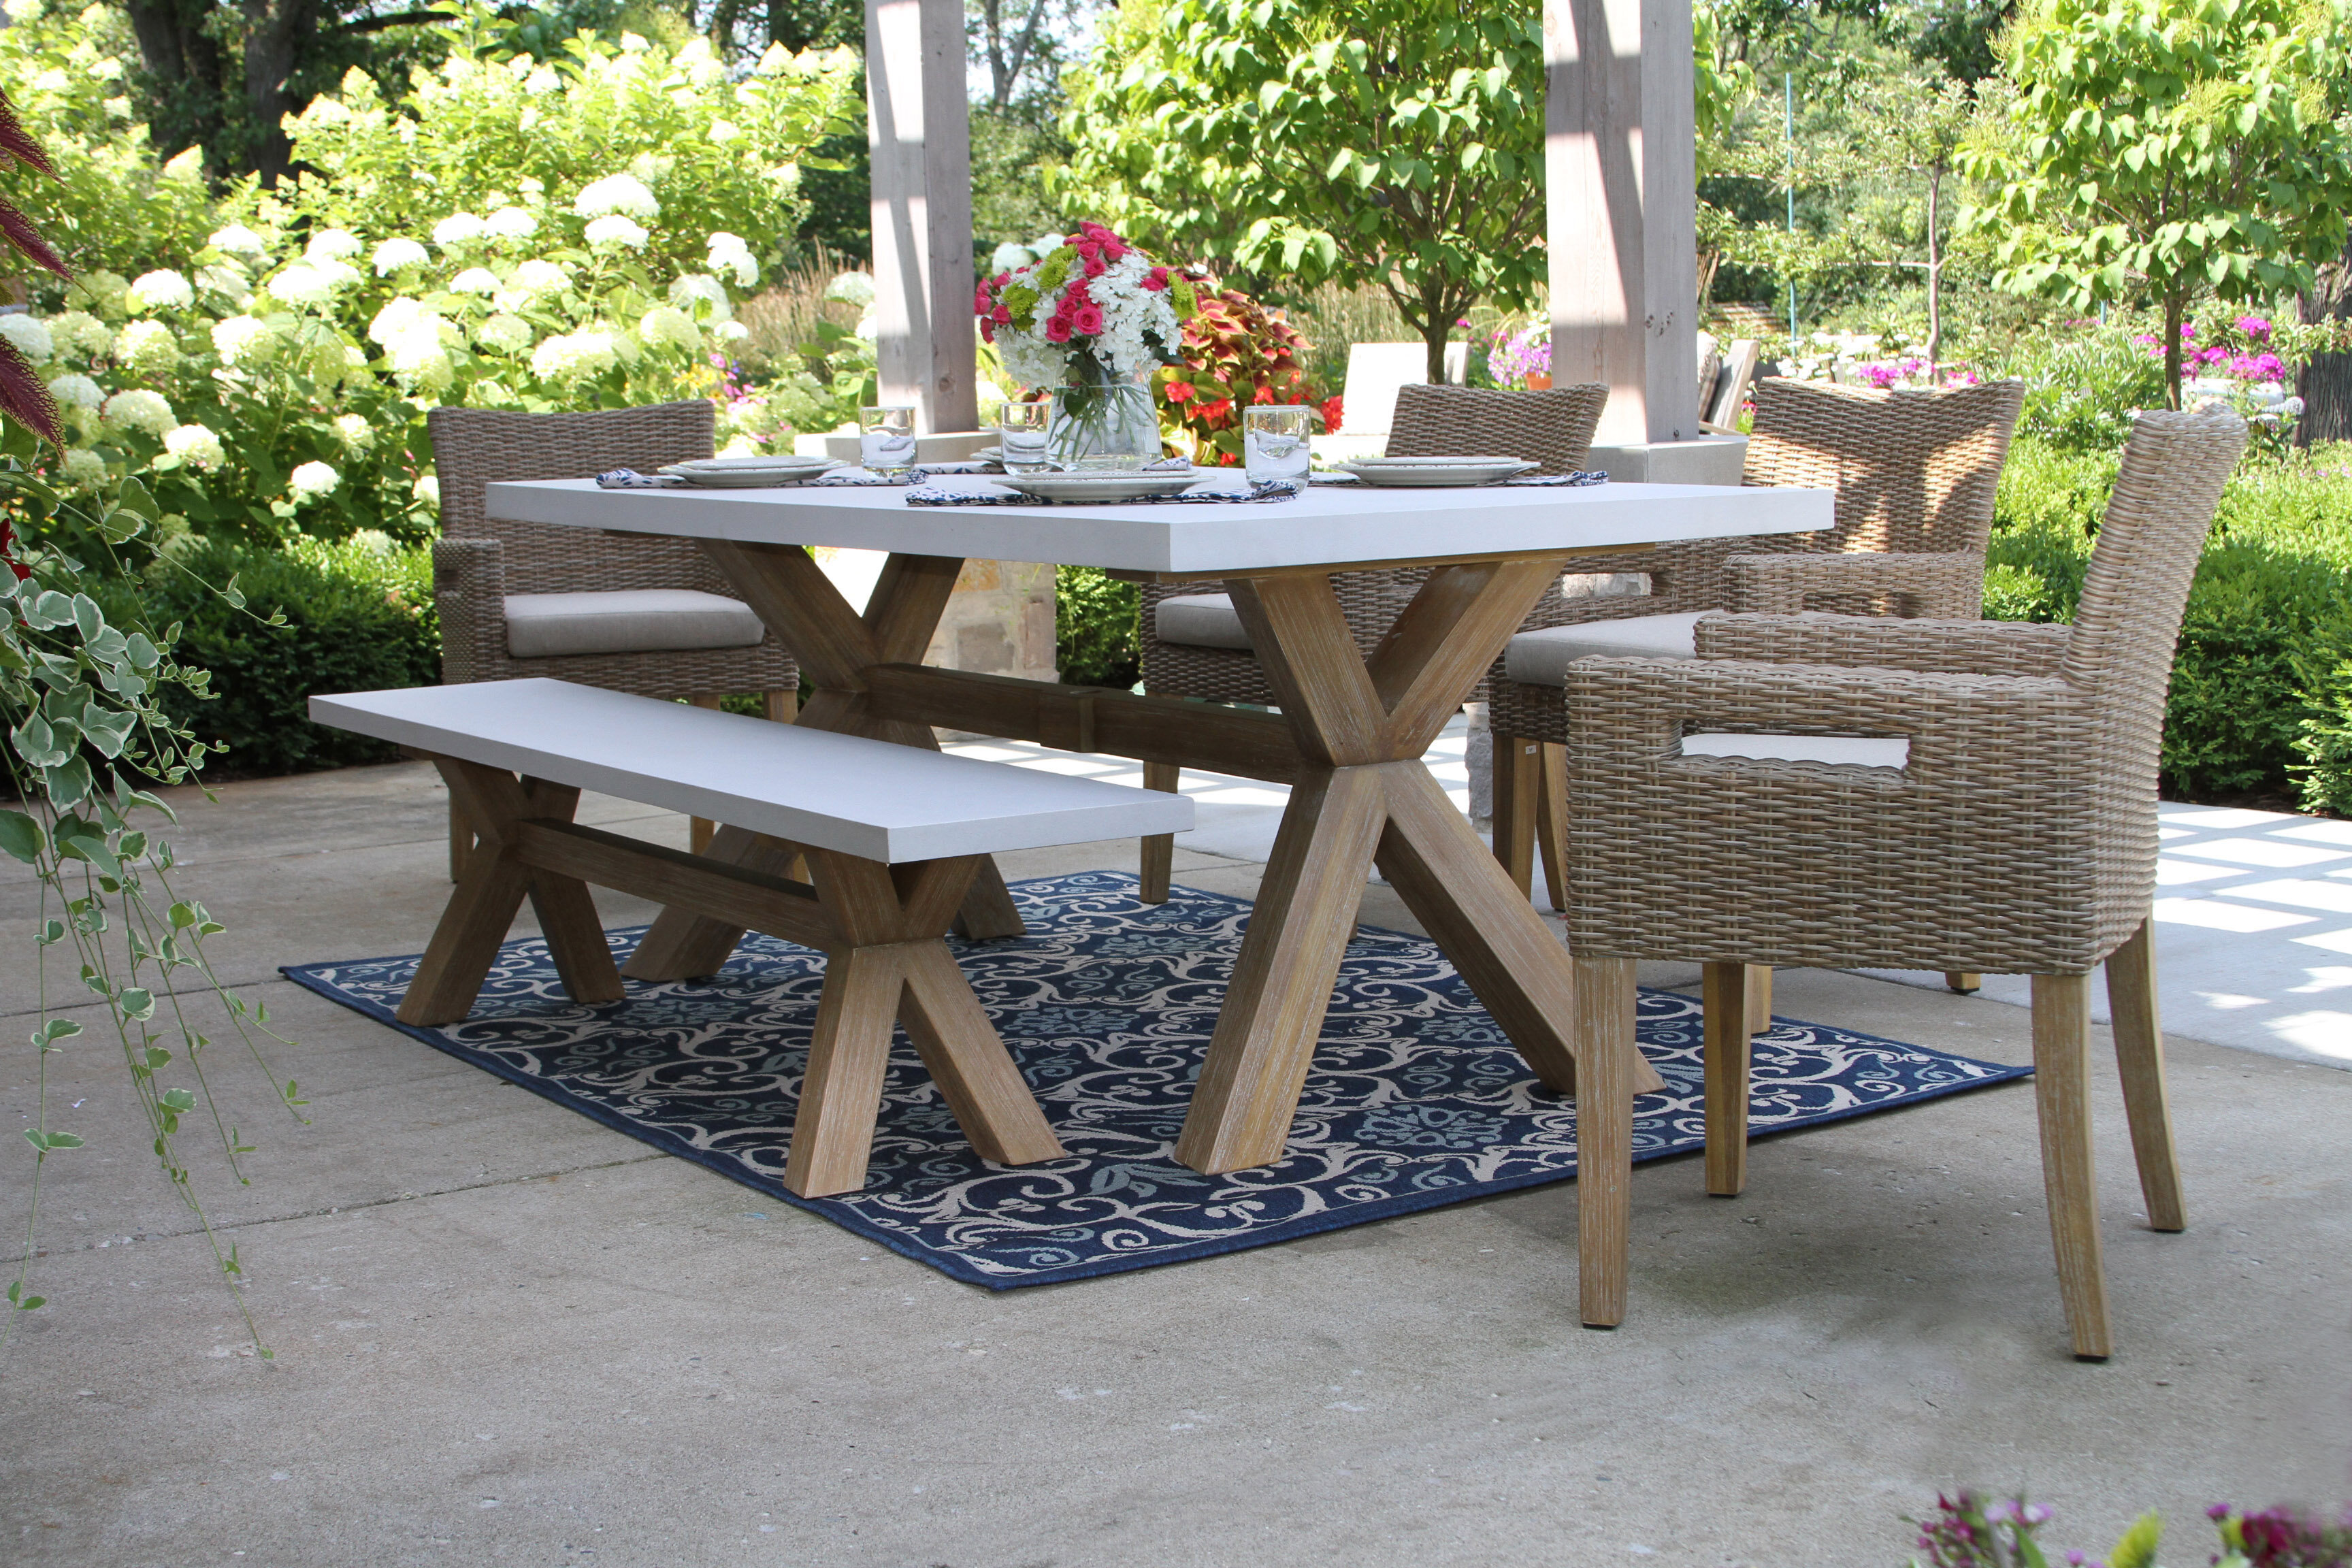 Stone Wicker Rattan Patio Dining Sets You Ll Love In 2021 Wayfair